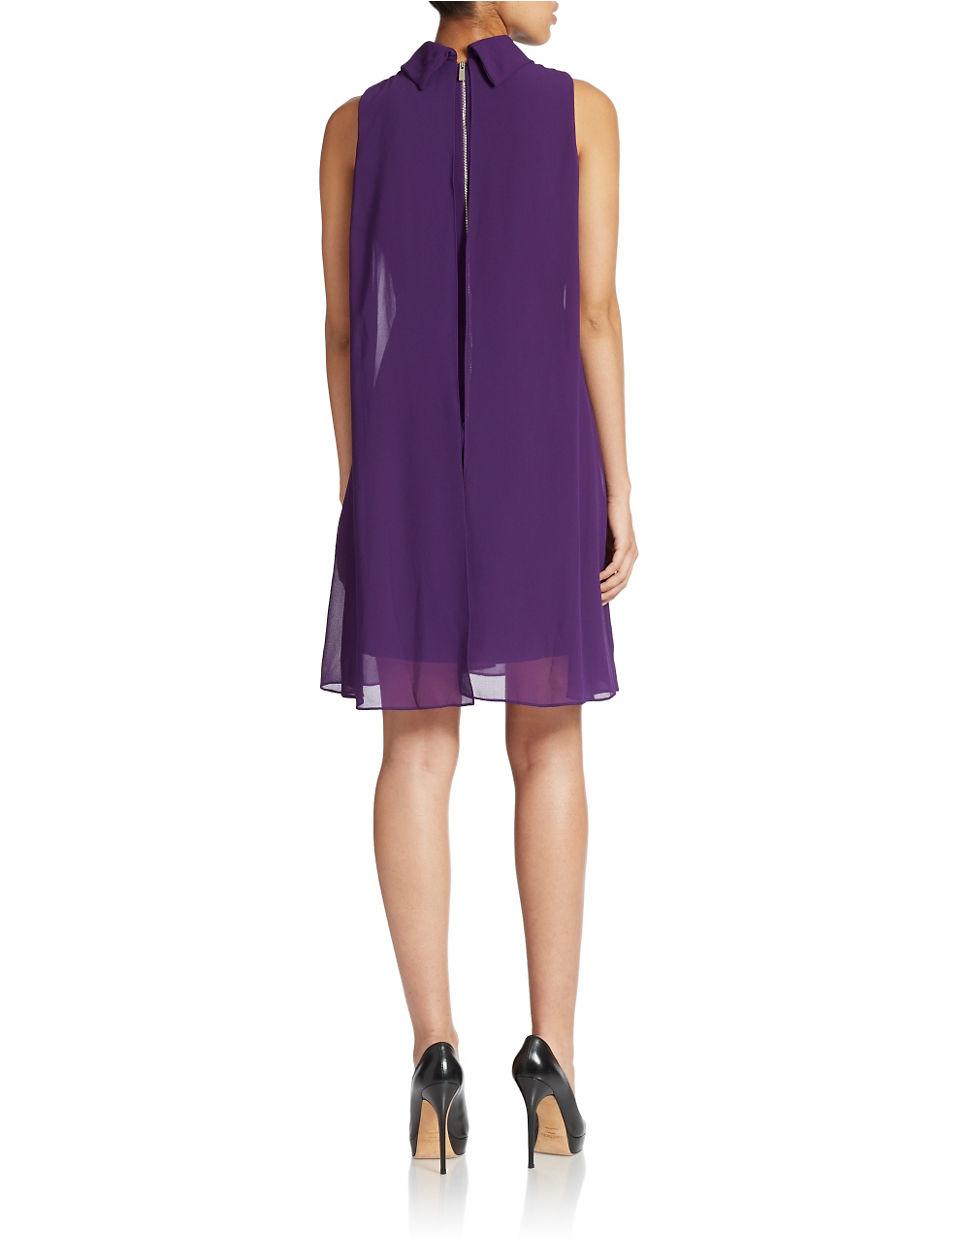 Lyst Vince Camuto Trapeze Cocktail Dress In Purple